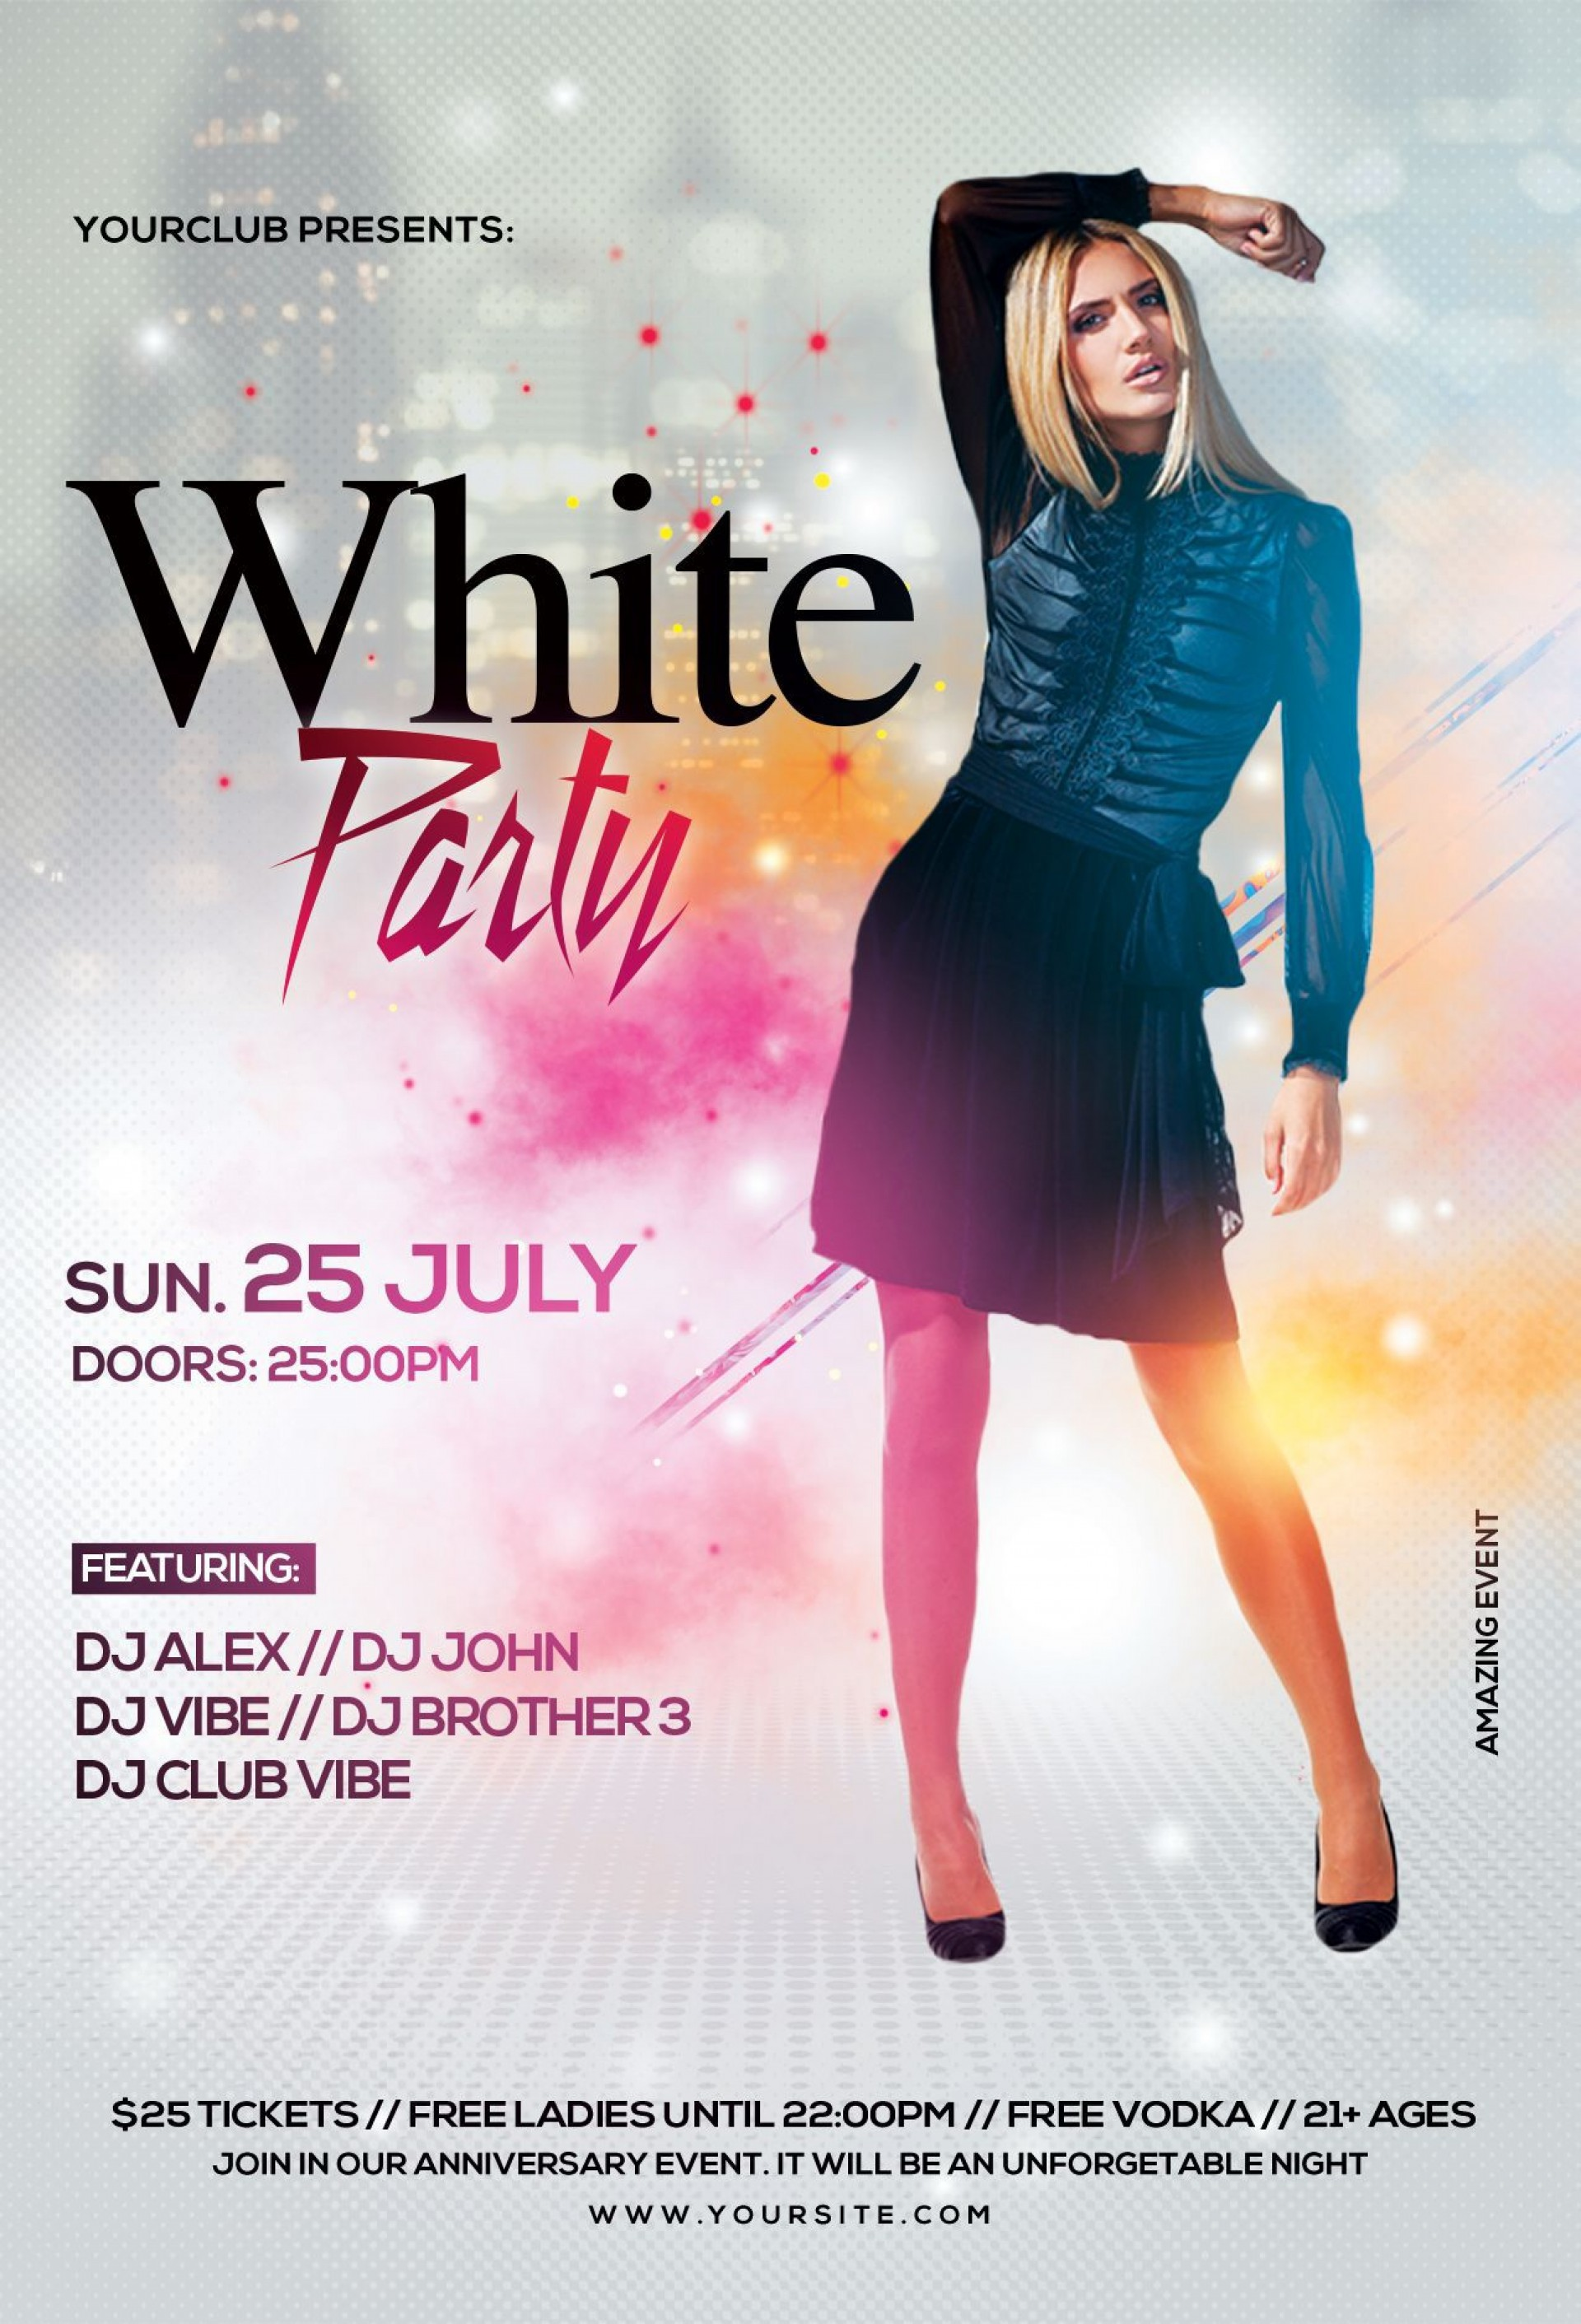 007 Wondrou Party Event Flyer Template Free Download Inspiration 1920